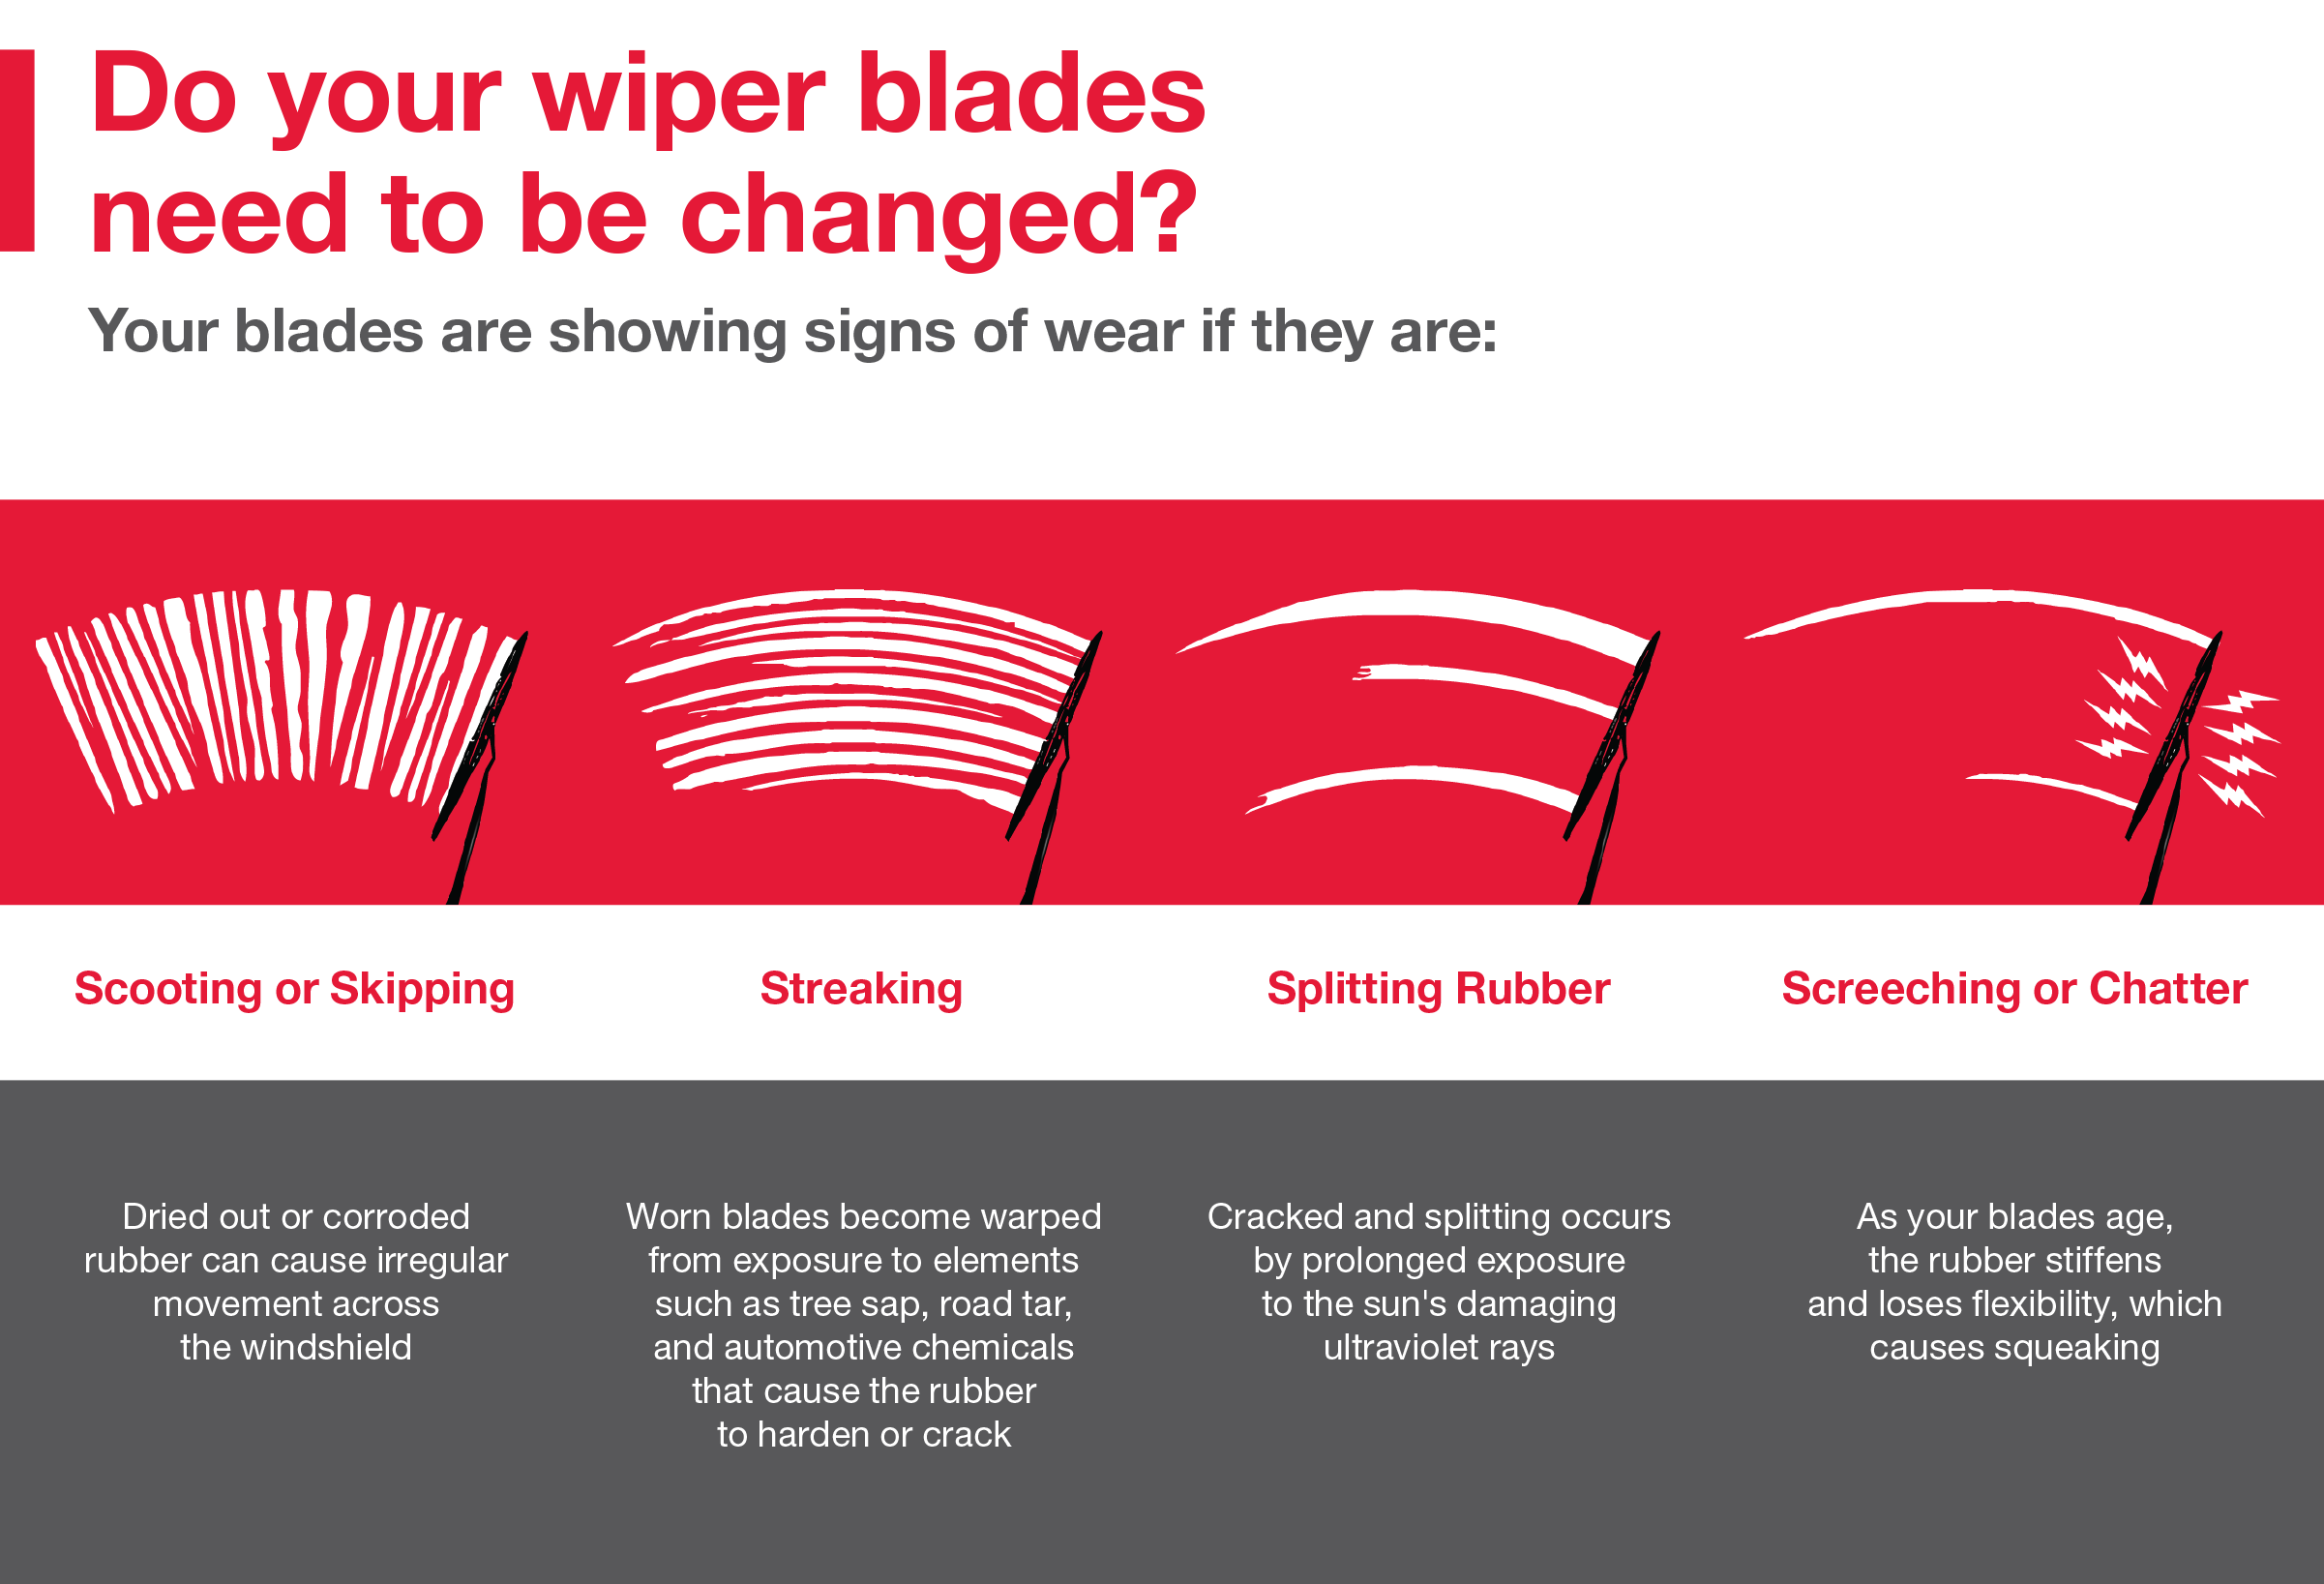 Do your wiper blades need to be changed? Call your local dealer for more info: (760) 300-1118